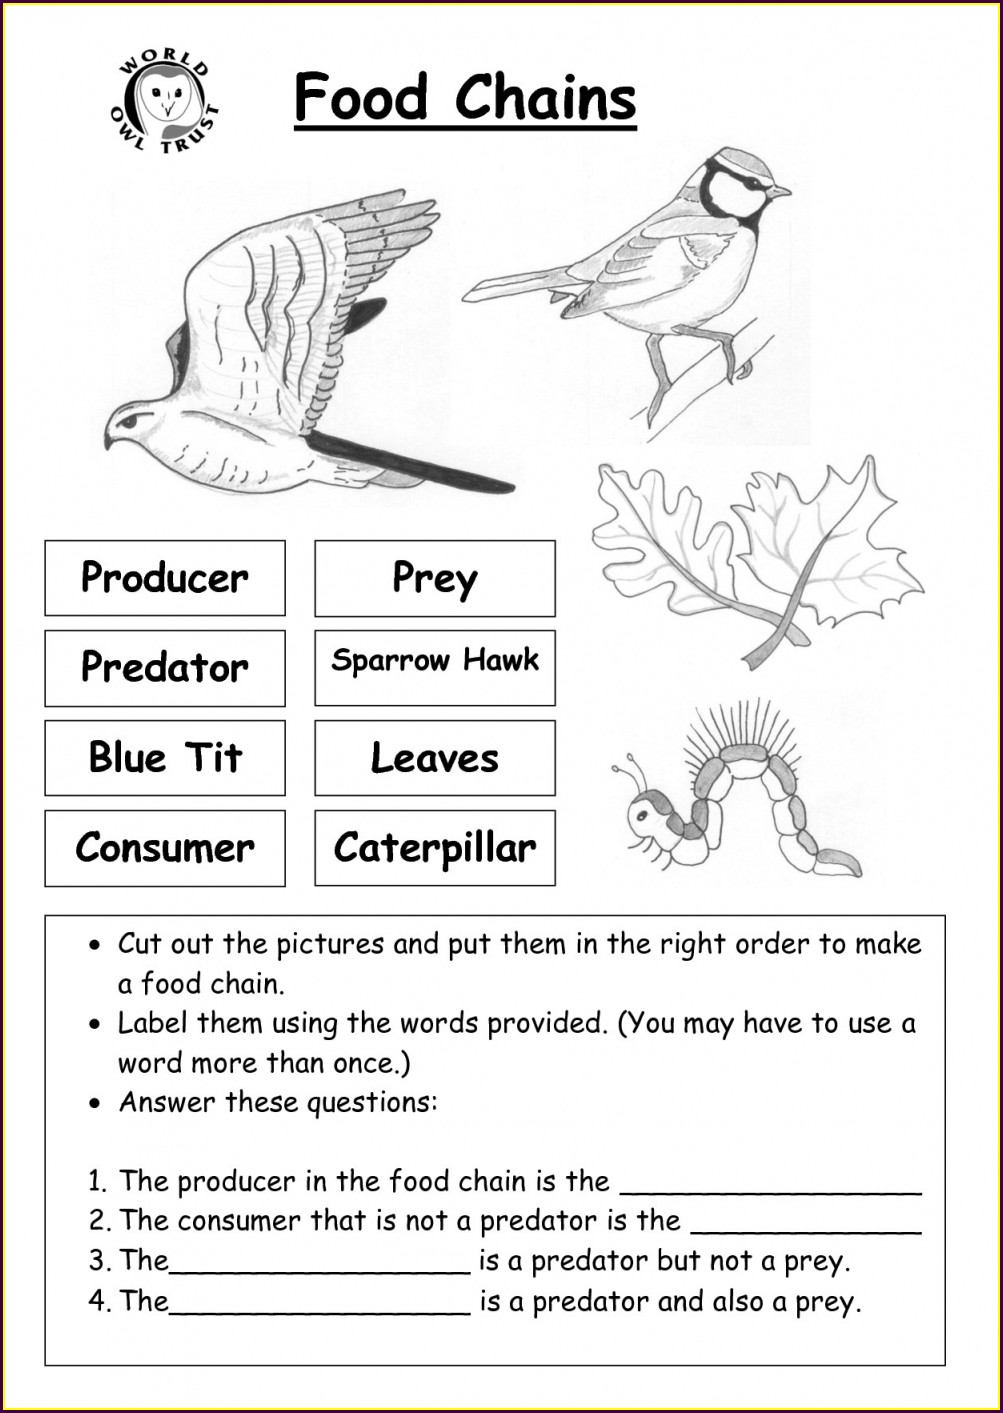 Worksheet On Food Chain For Grade 4